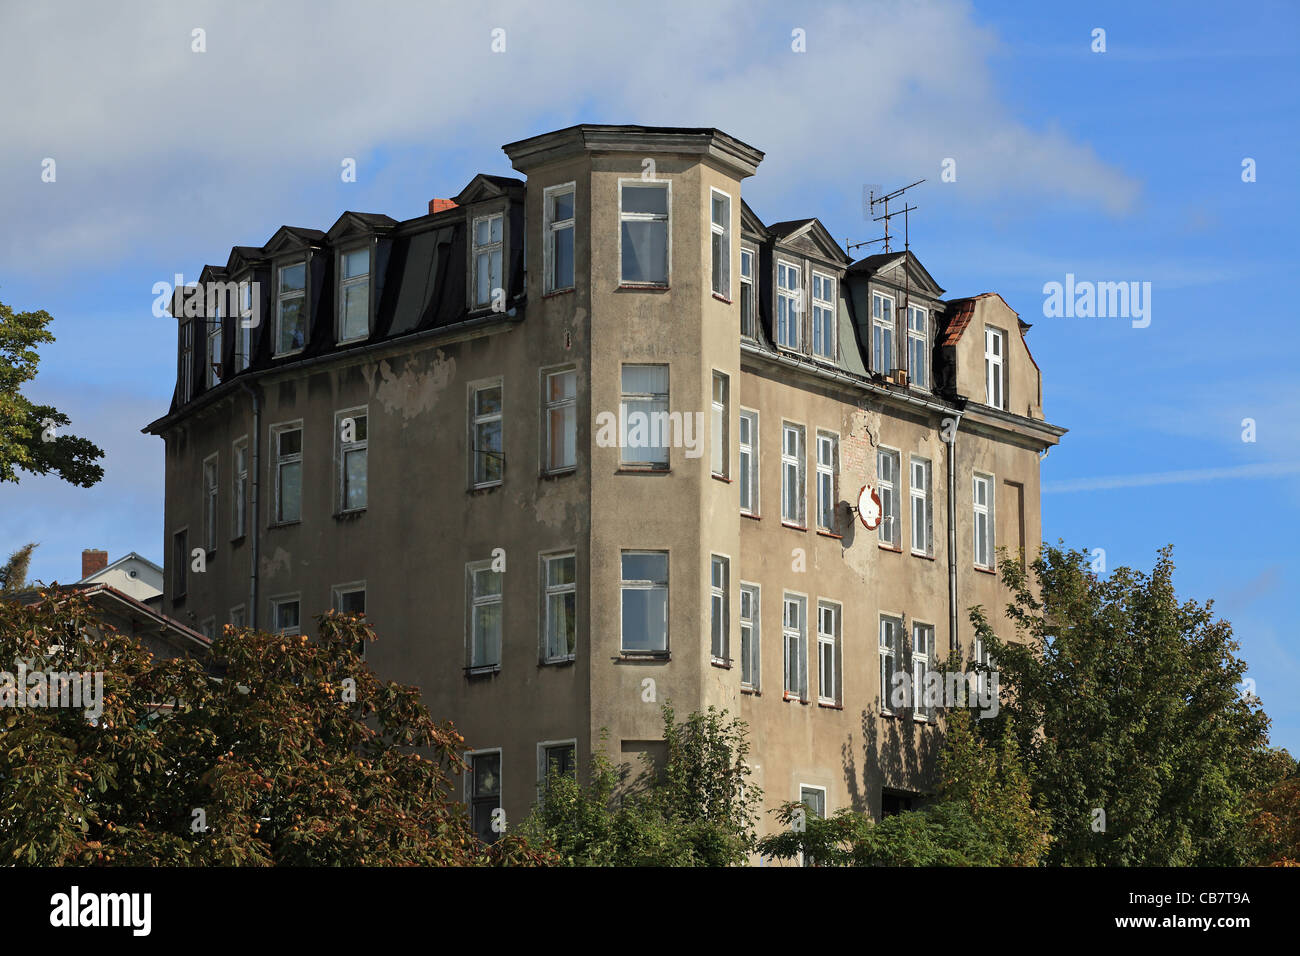 Old multistory residential house in need of renovation strongly - Stock Image